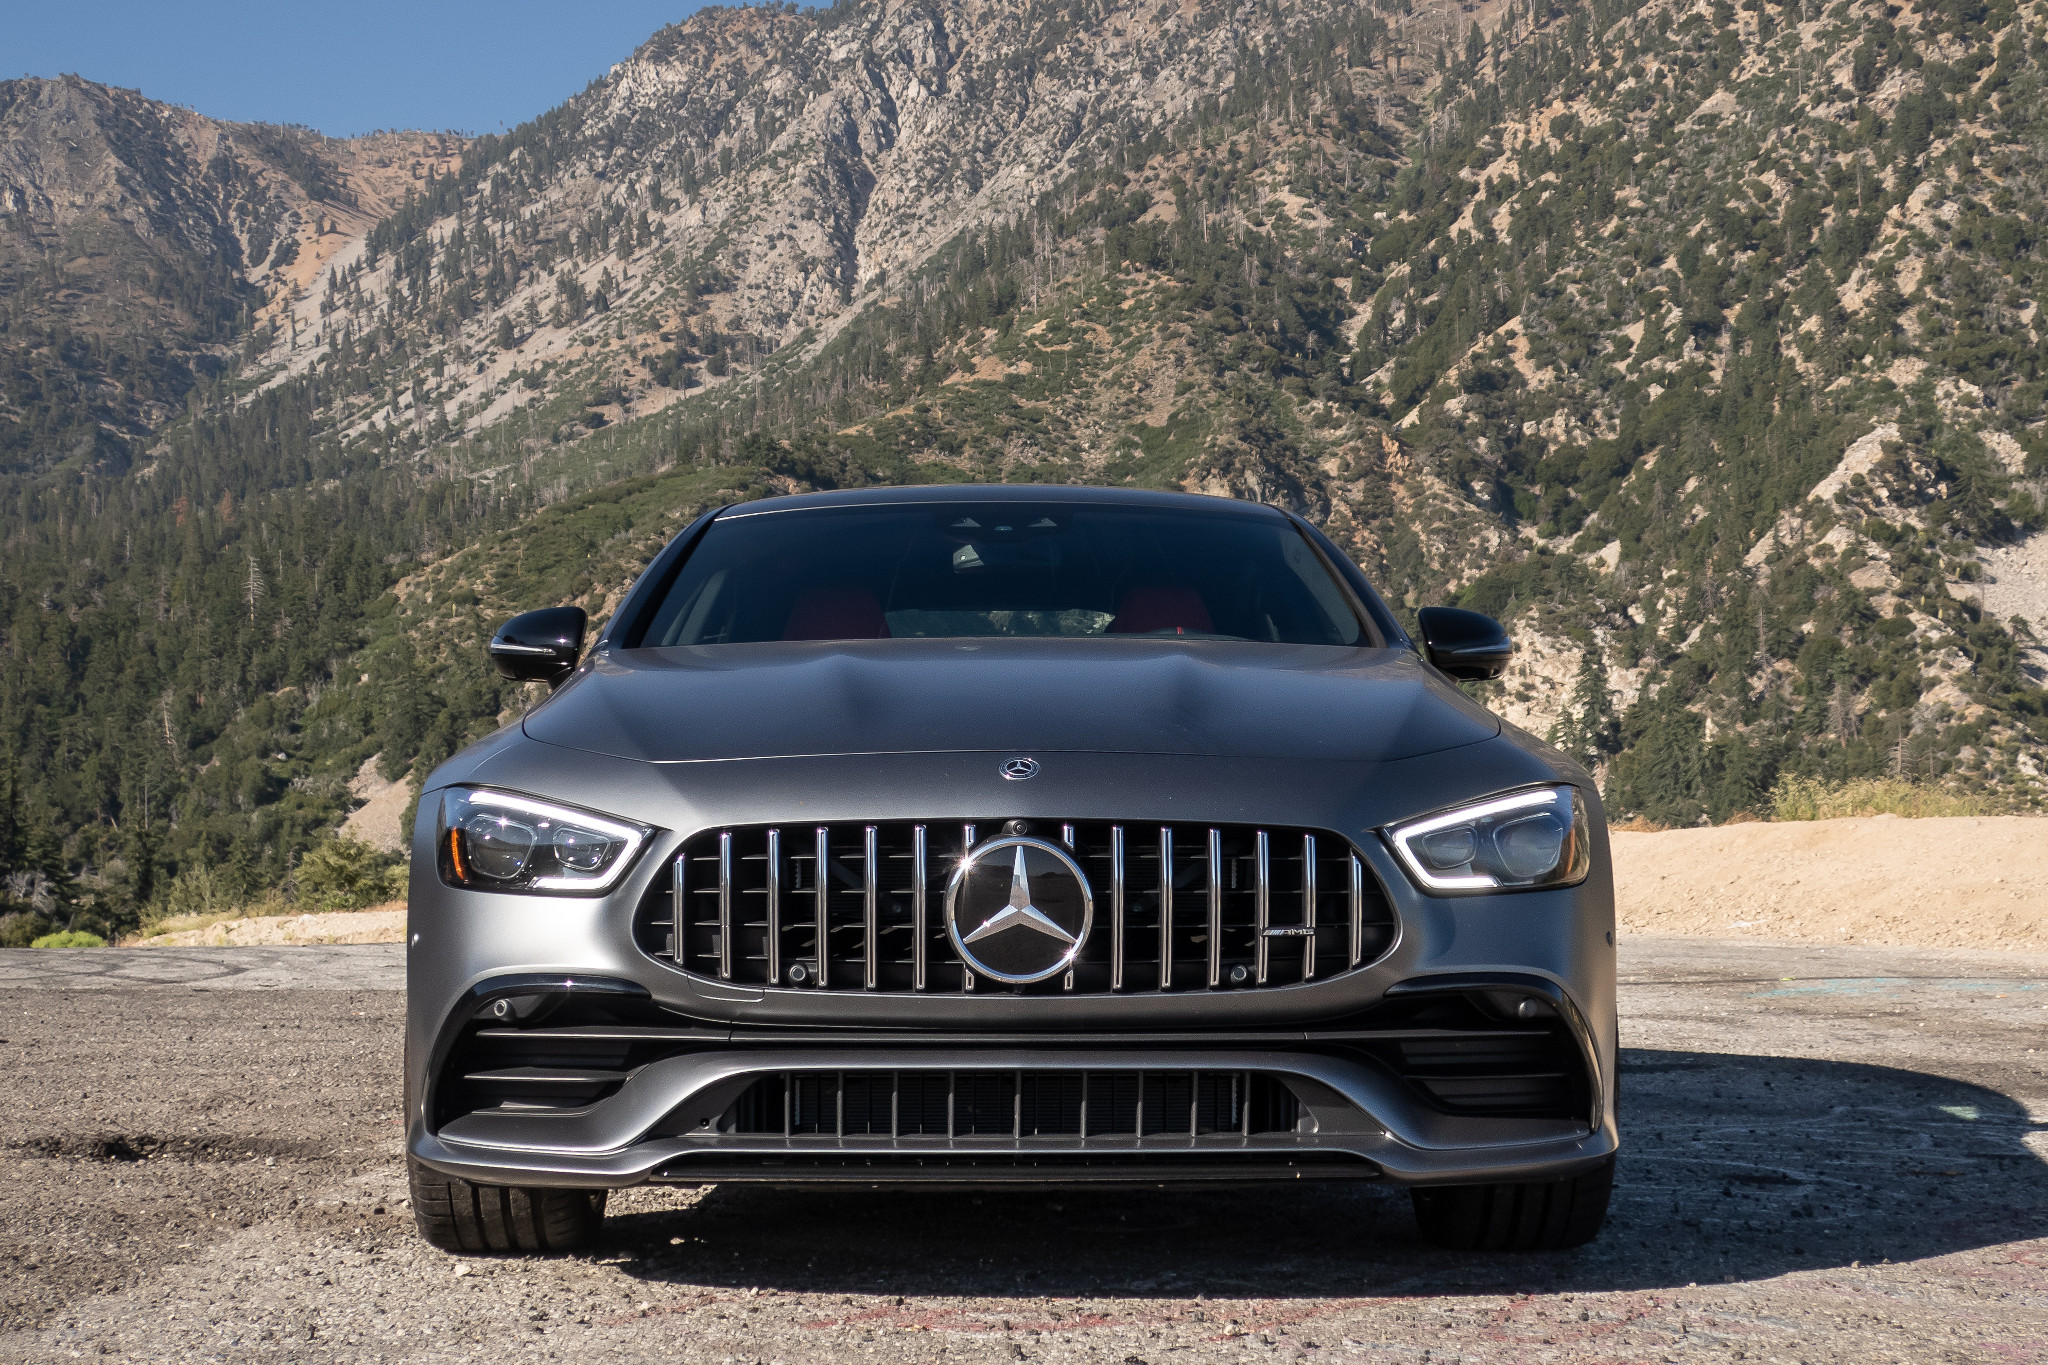 mercedes-amg-gt53-2019-03-exterior--front--mountains--silver.jpg